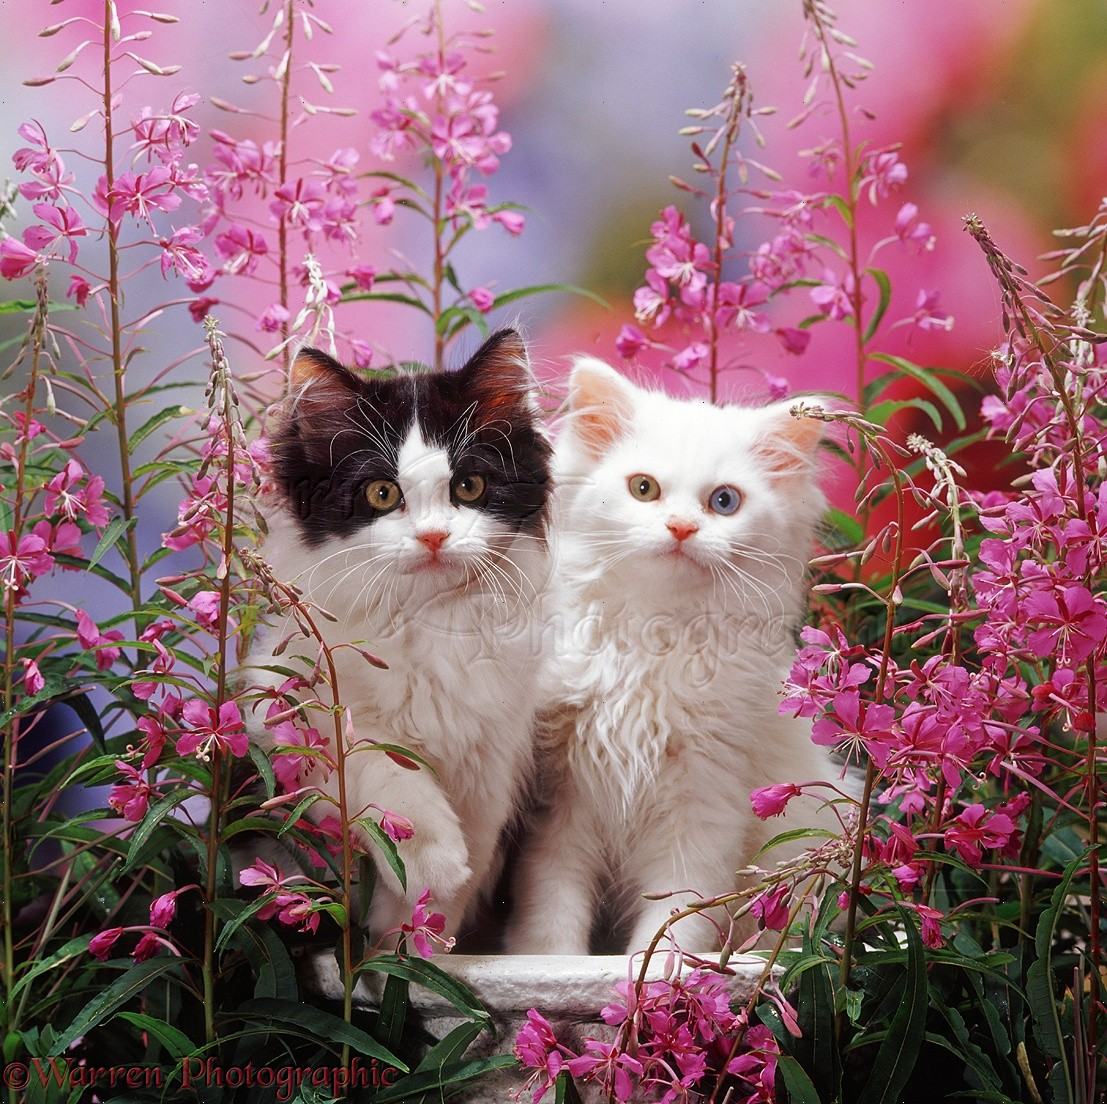 White And Black And White Kittens Among Pink Flowers Photo Wp37583